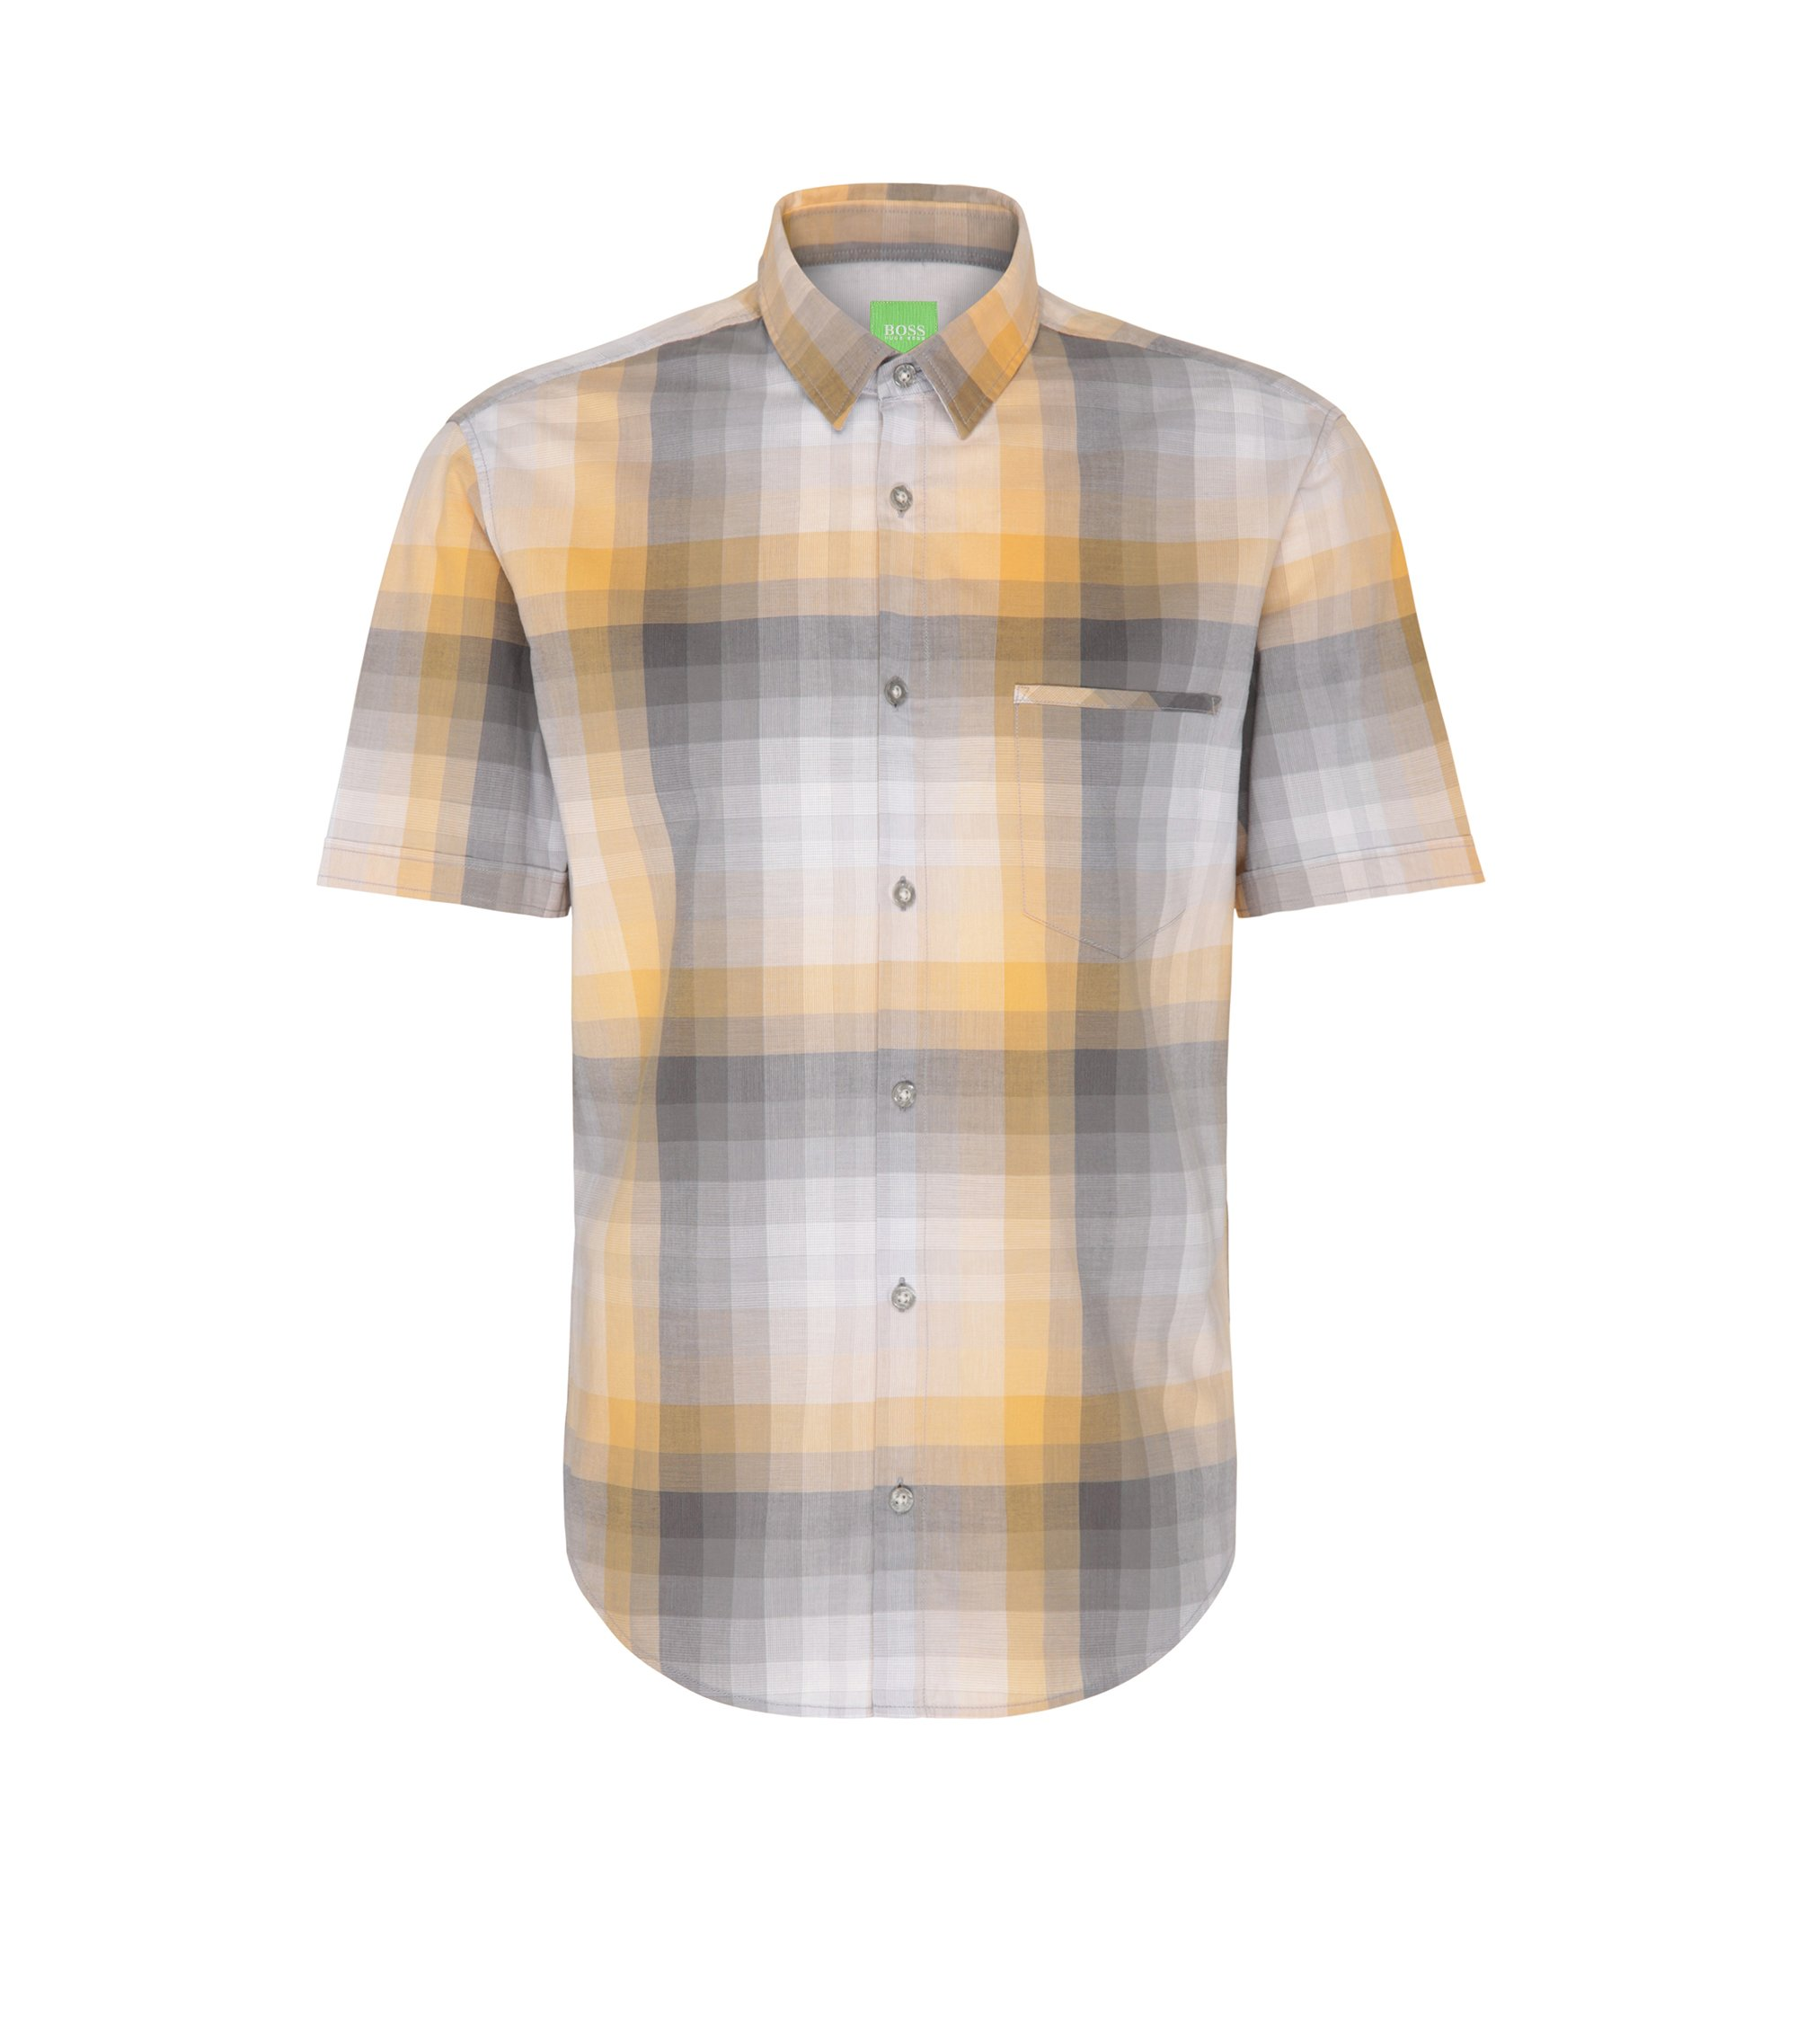 Gradient Checked Cotton Shirt, Regular Fit | C-Bansino, Open Orange